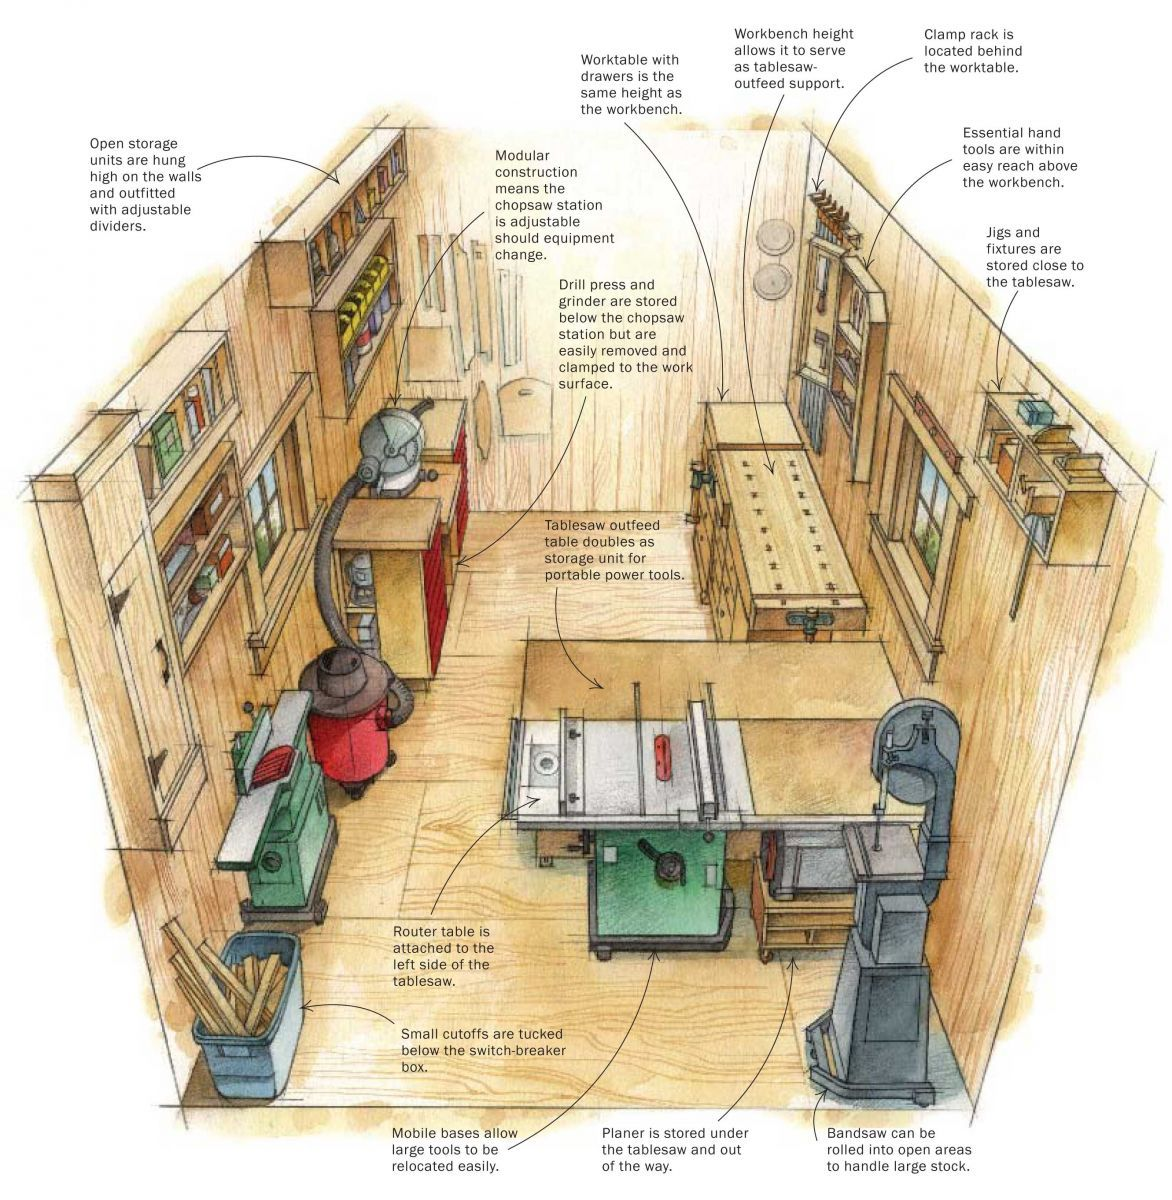 Woodworking Shop Layout on Pinterest | Wood Shop Organization, Wood ...